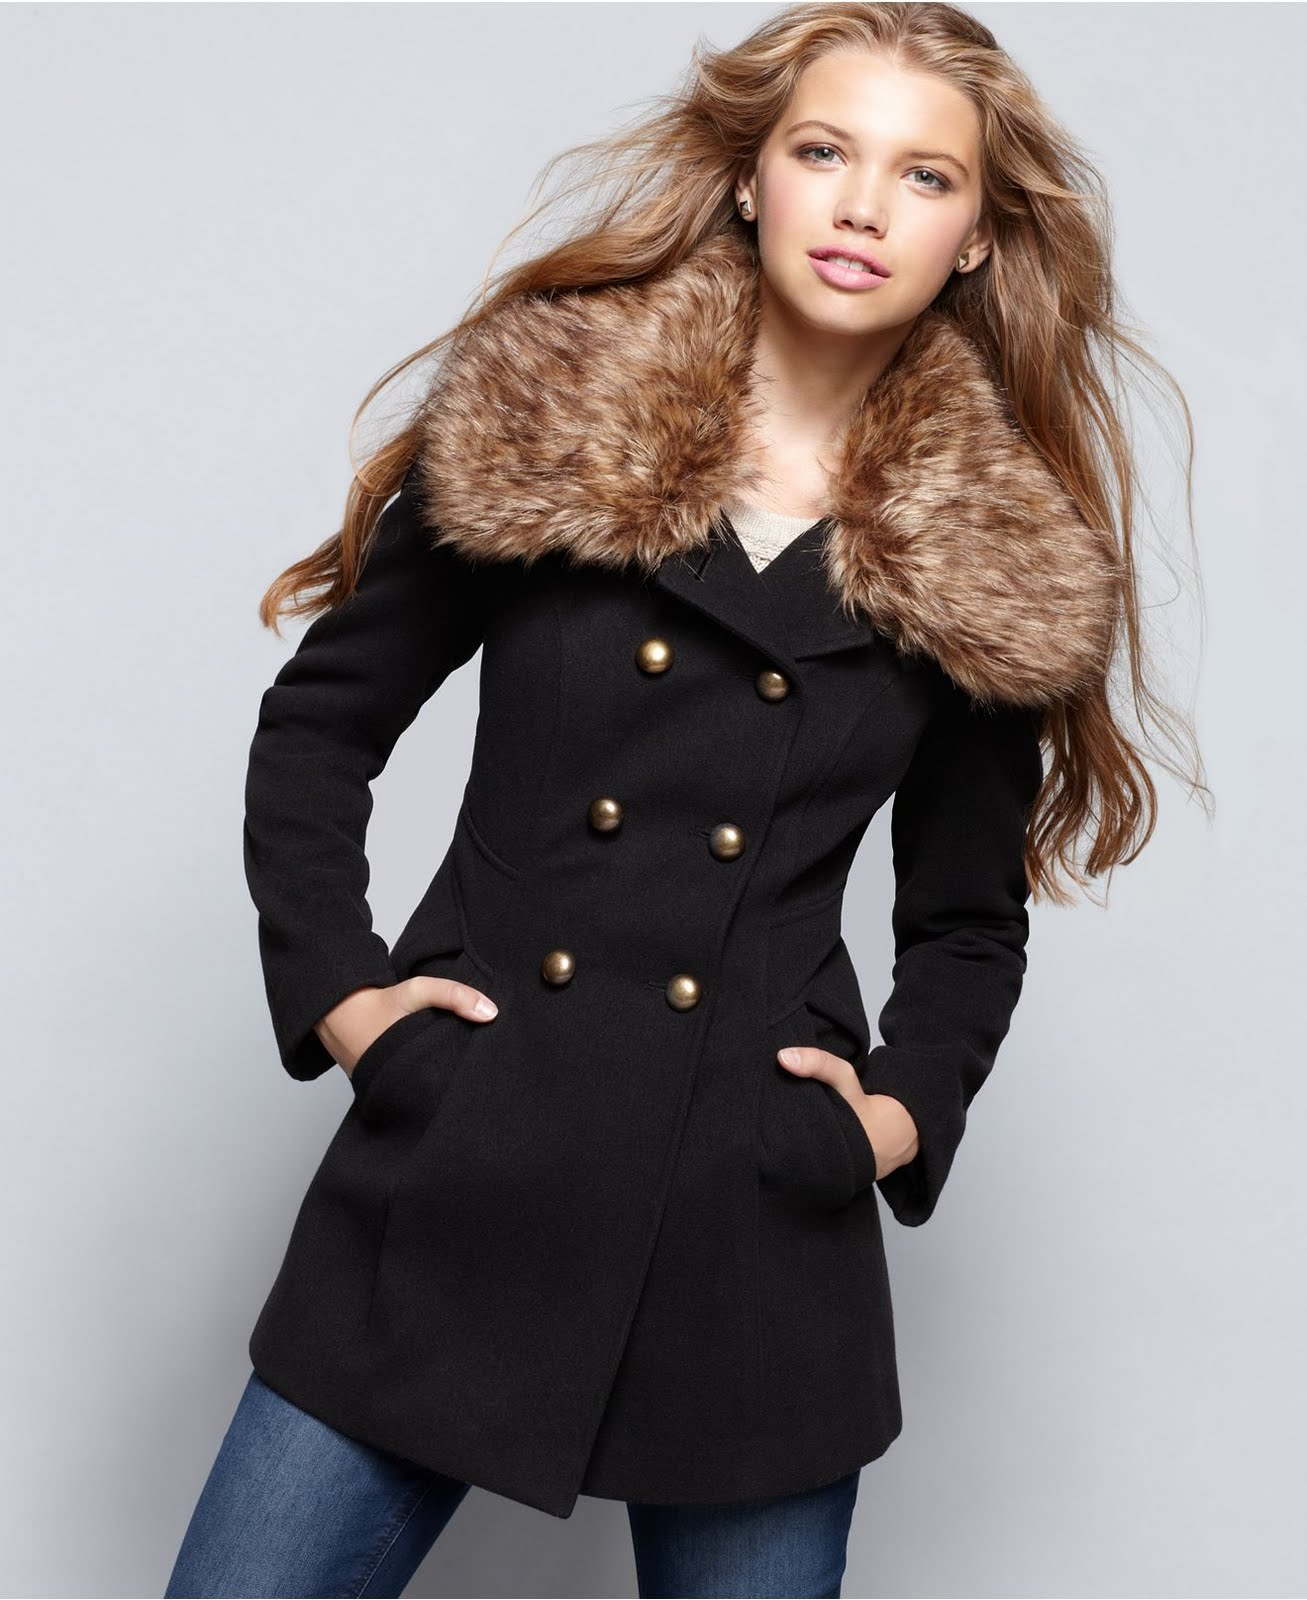 Shop the latest styles of Womens Fur Coats at Macys. Check out our designer collection of chic coats including peacoats, trench coats, puffer coats and more! The Fur Vault Wing-Collar Mink Fur Coat $5, Now $4,